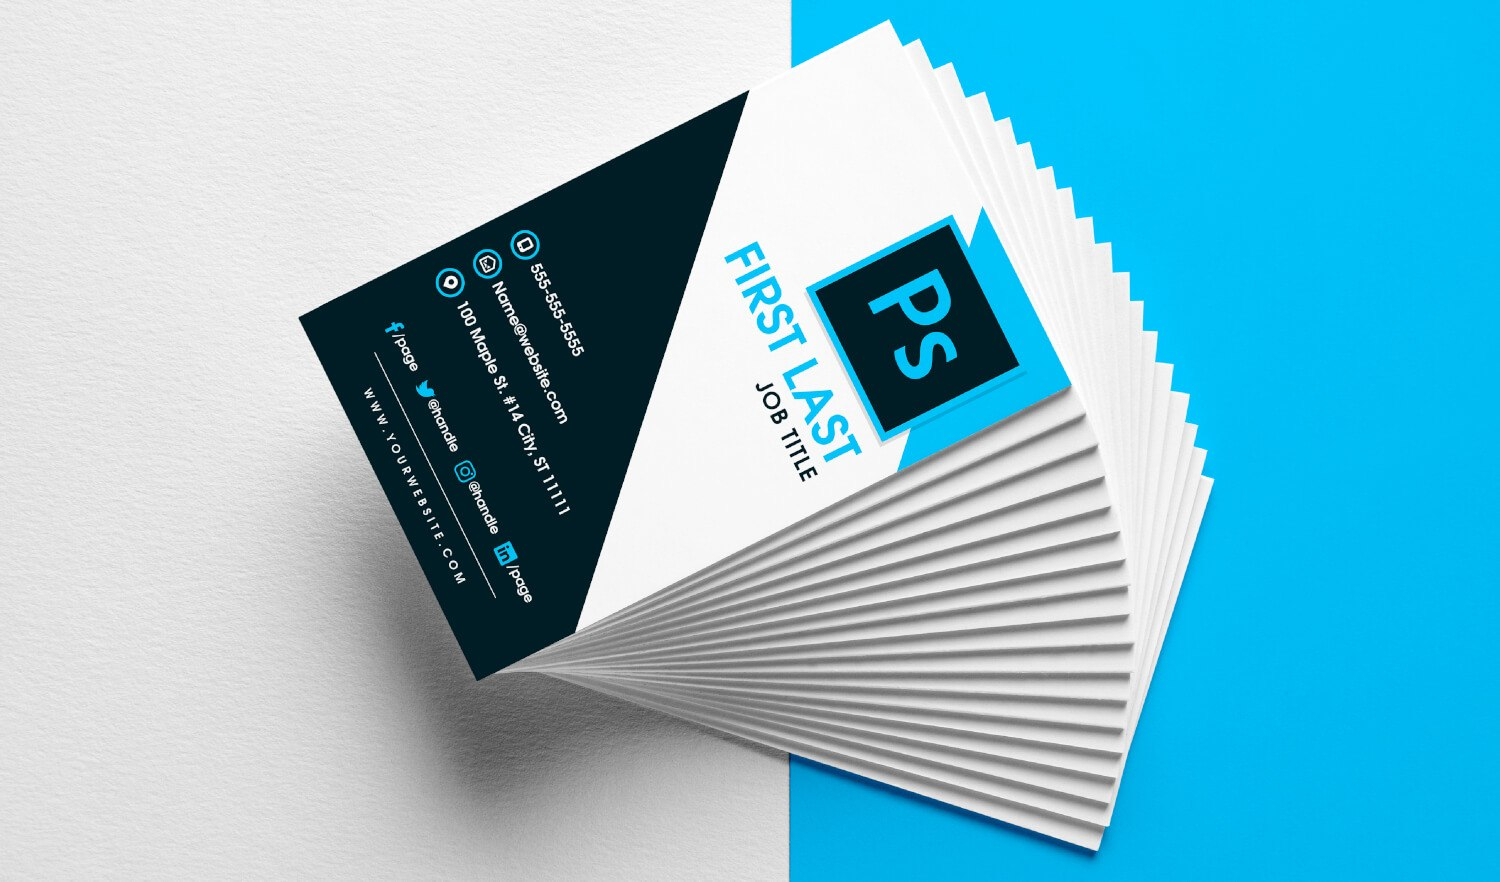 Free Vertical Business Card Template In Psd Format With Free Business Card Templates In Psd Format